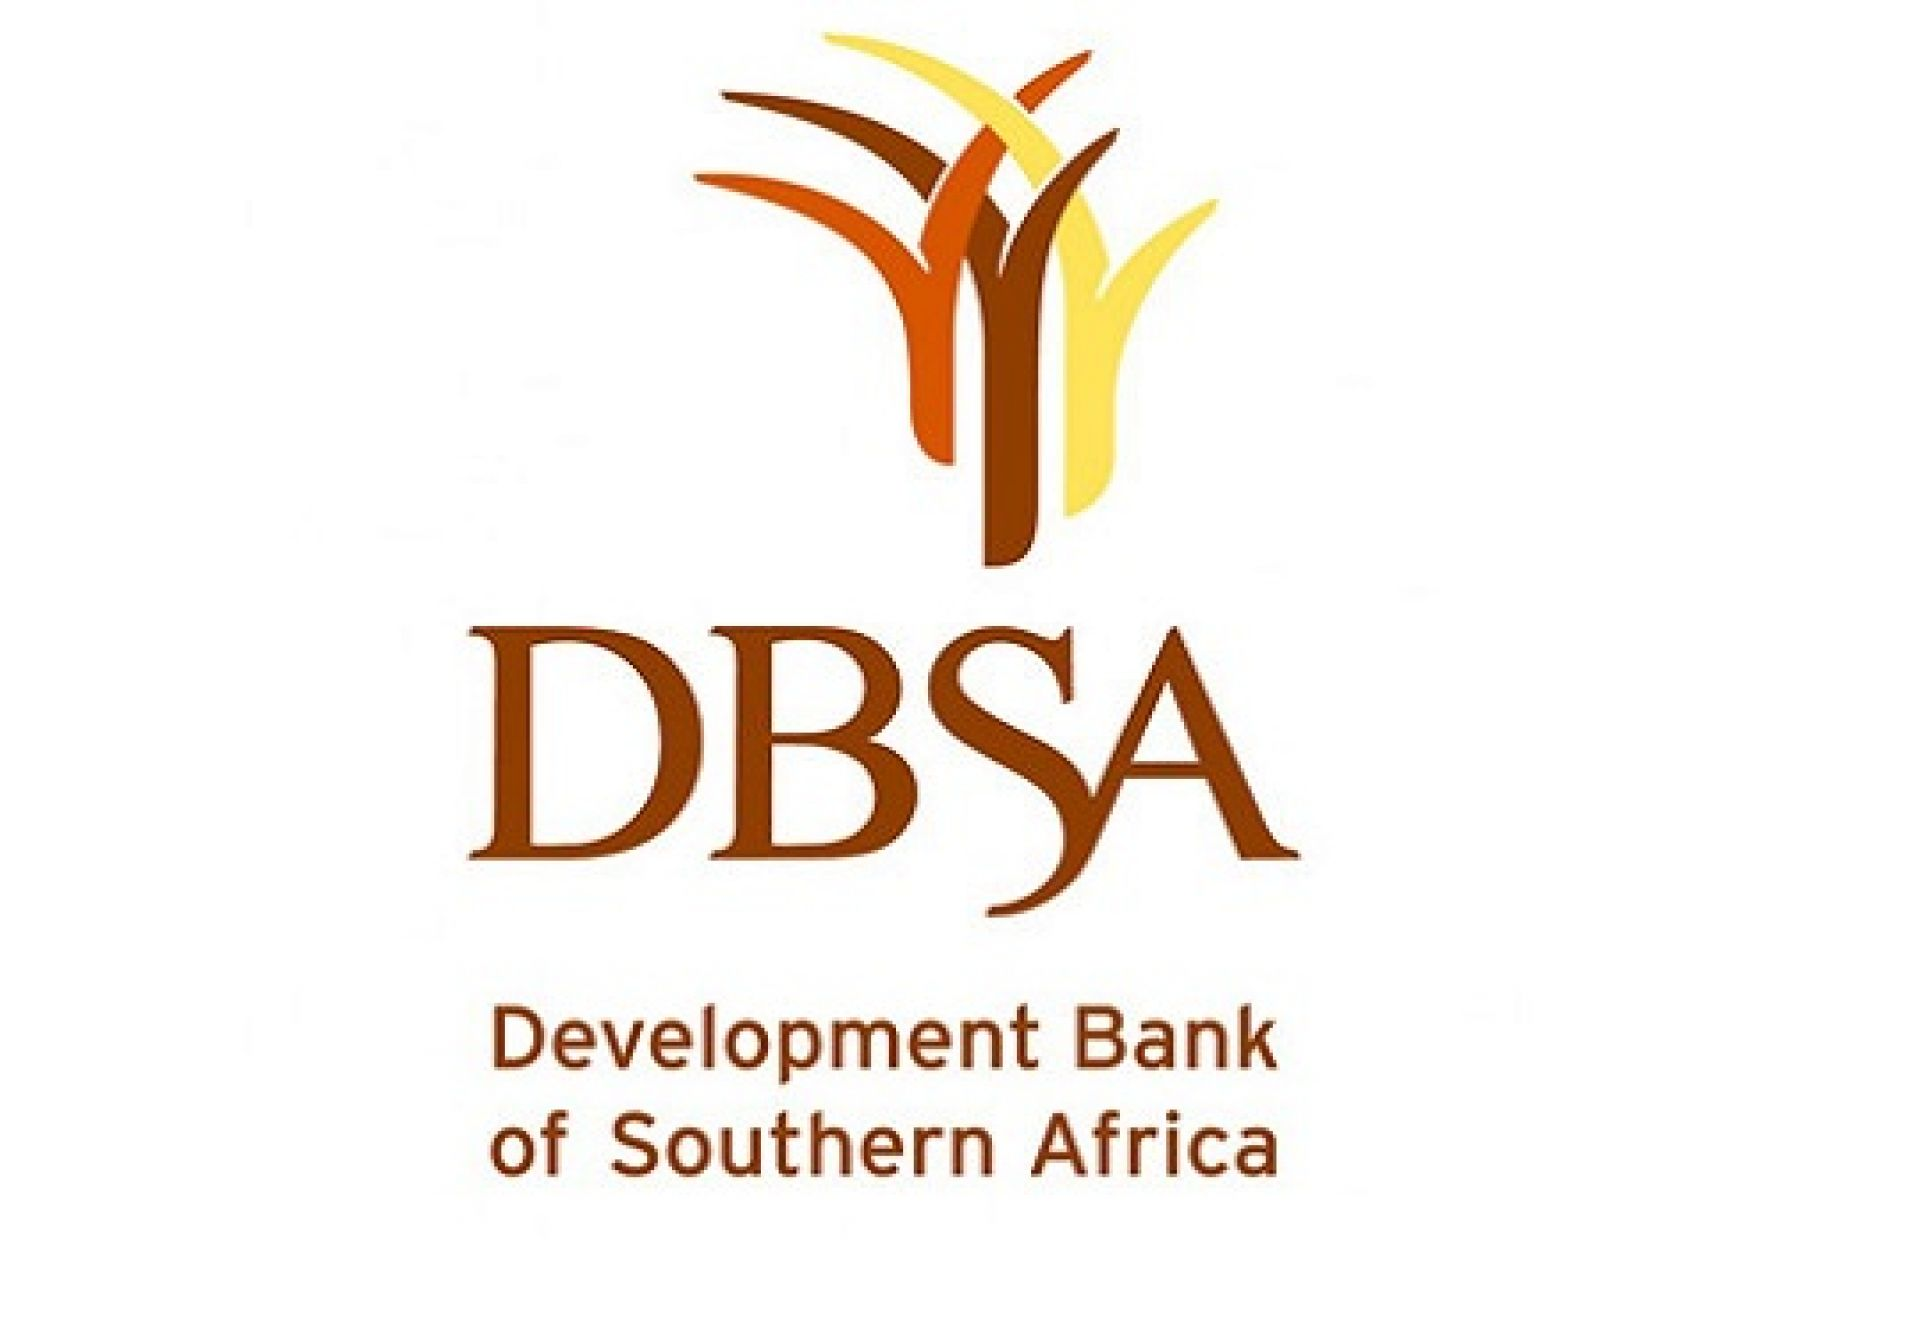 Development Bank of Southern Africa to set up $140 million Climate Finance Facility